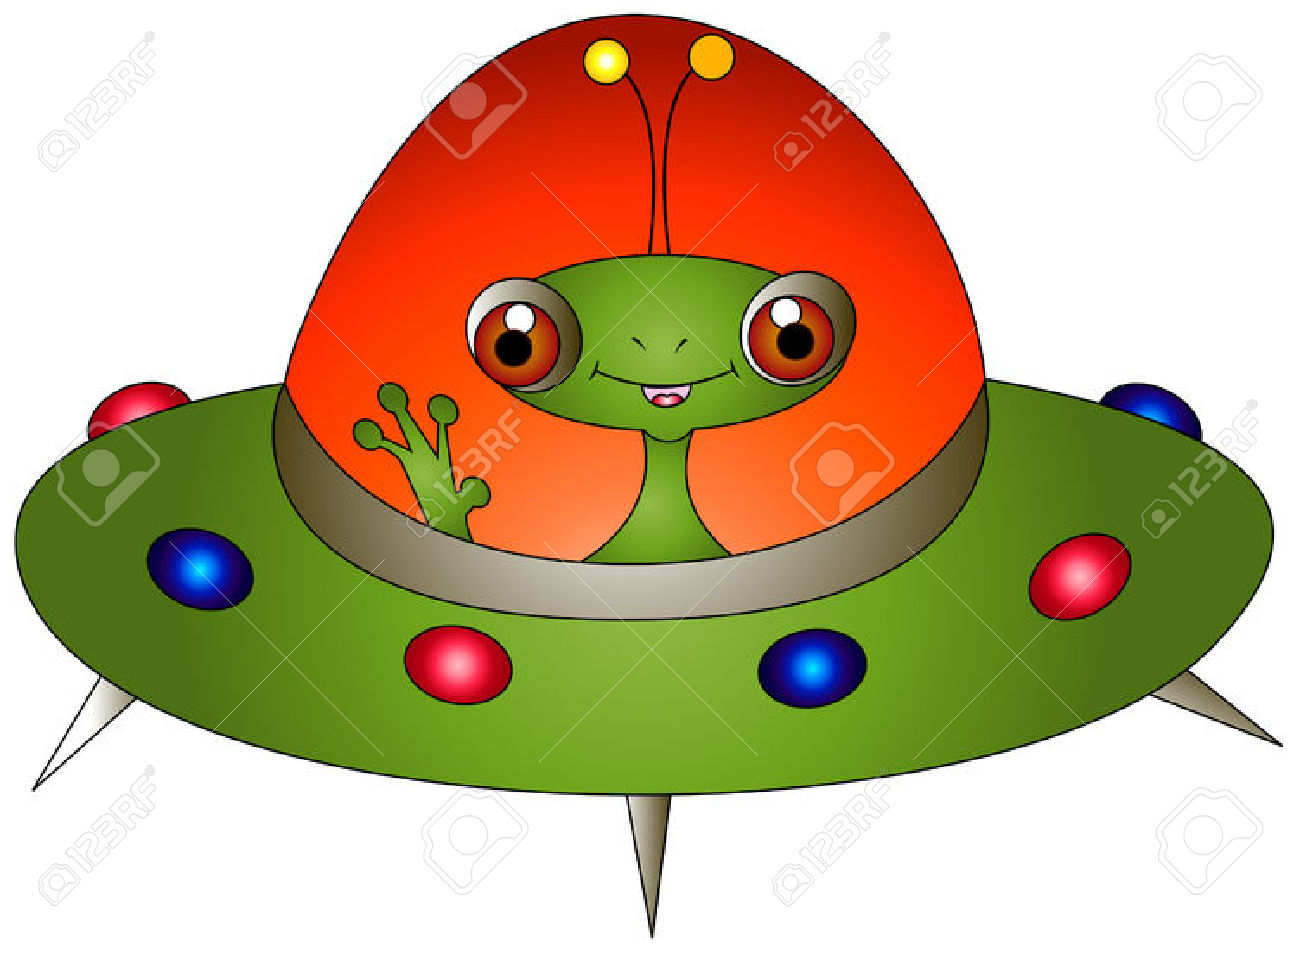 Spaceship clipart green alien.  collection of cute